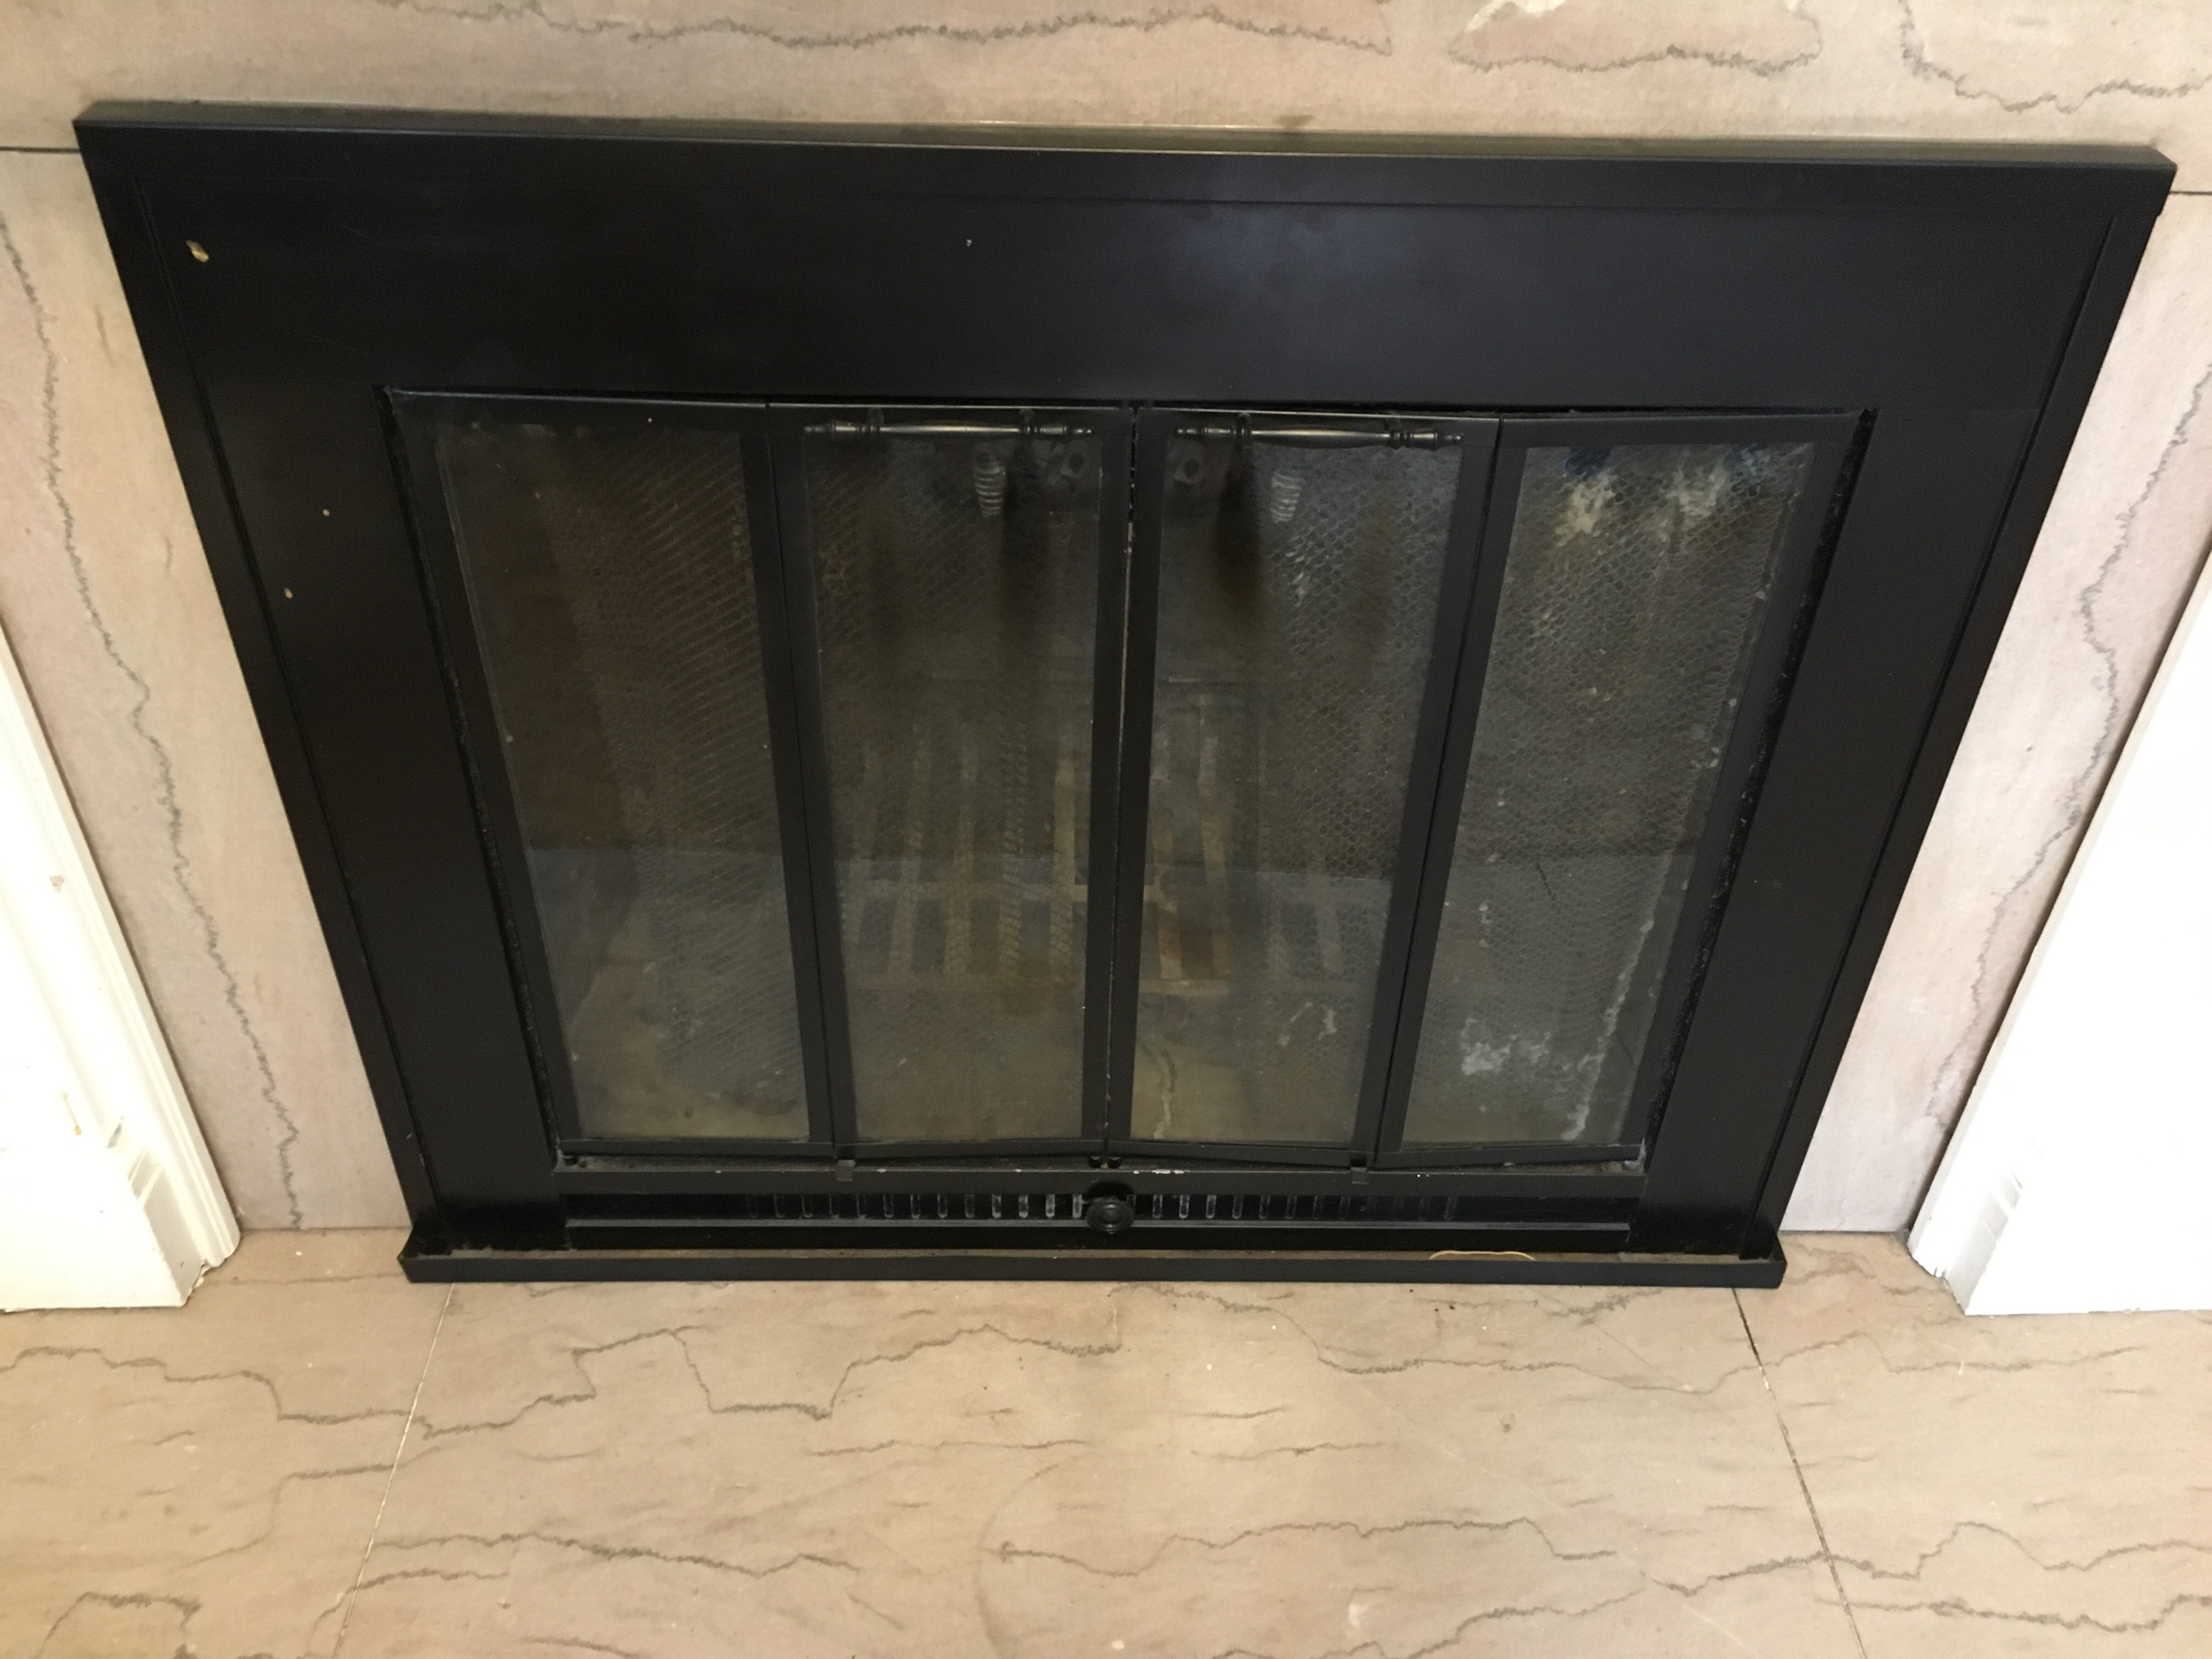 Fireplace Repair Nashville Tn Ashbusters Chimney Service 5543 Edmondson Pike Nashville Tn